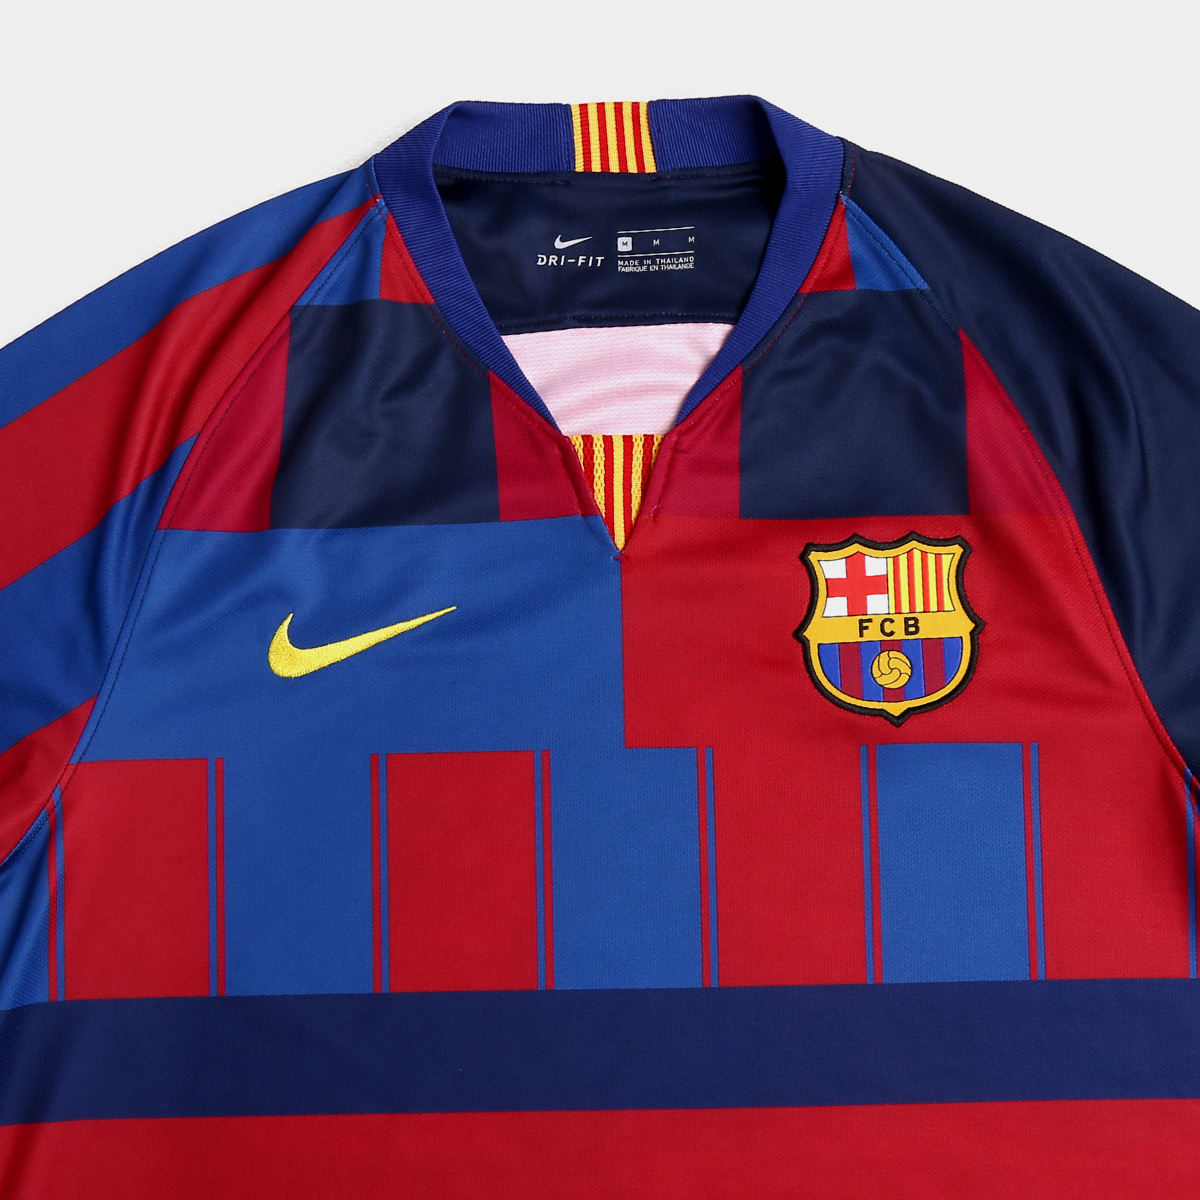 a05c228ae6d The Nike FC Barcelona Mashup soccer jersey features elements of all Barcelona  kits worn by the club over the last two decades.